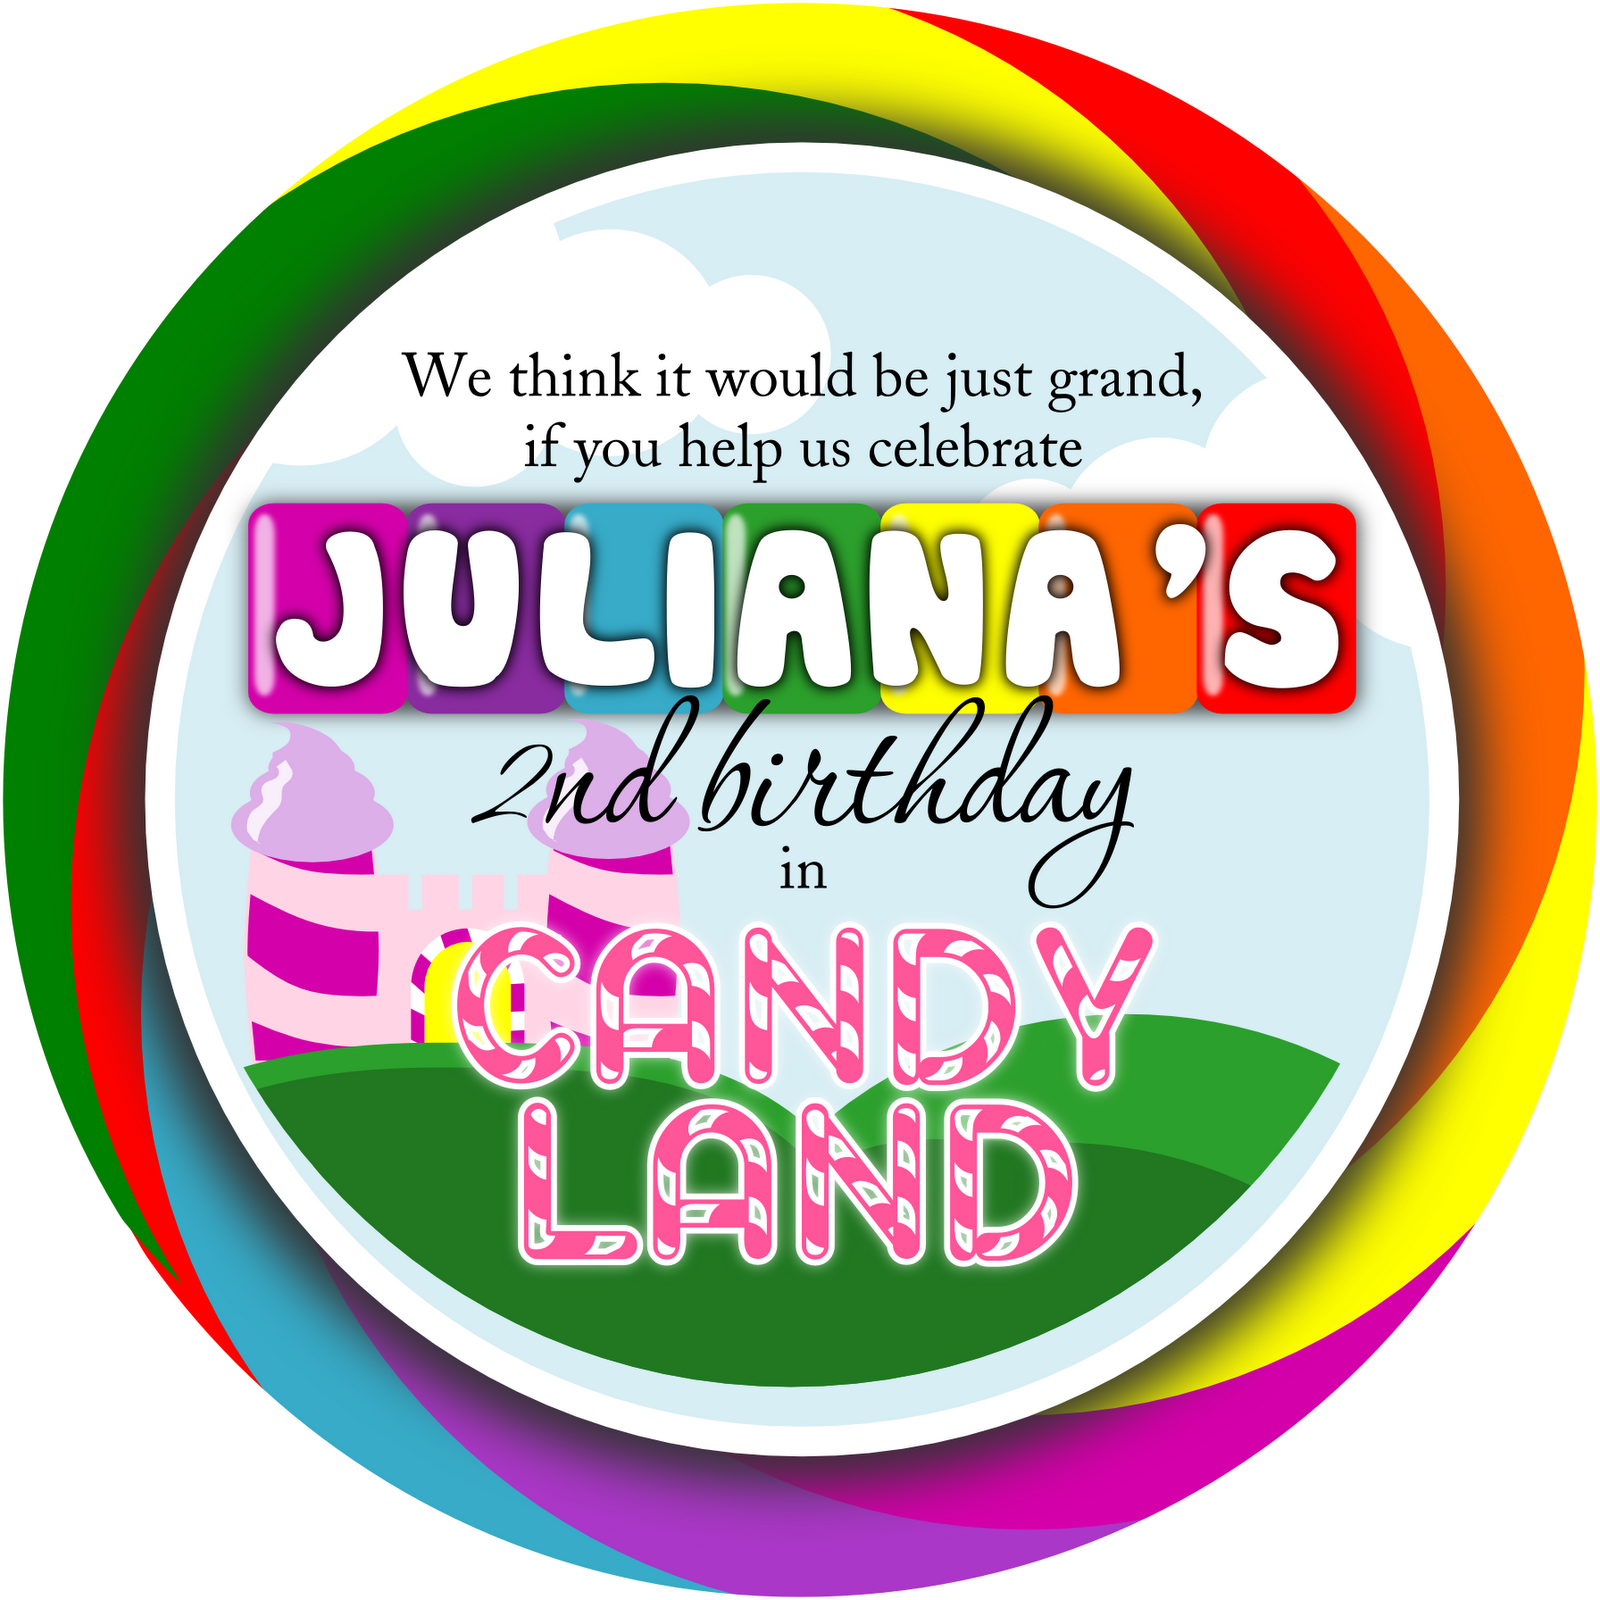 candy land invitation template free Google Search – Candy Land Birthday Invitations